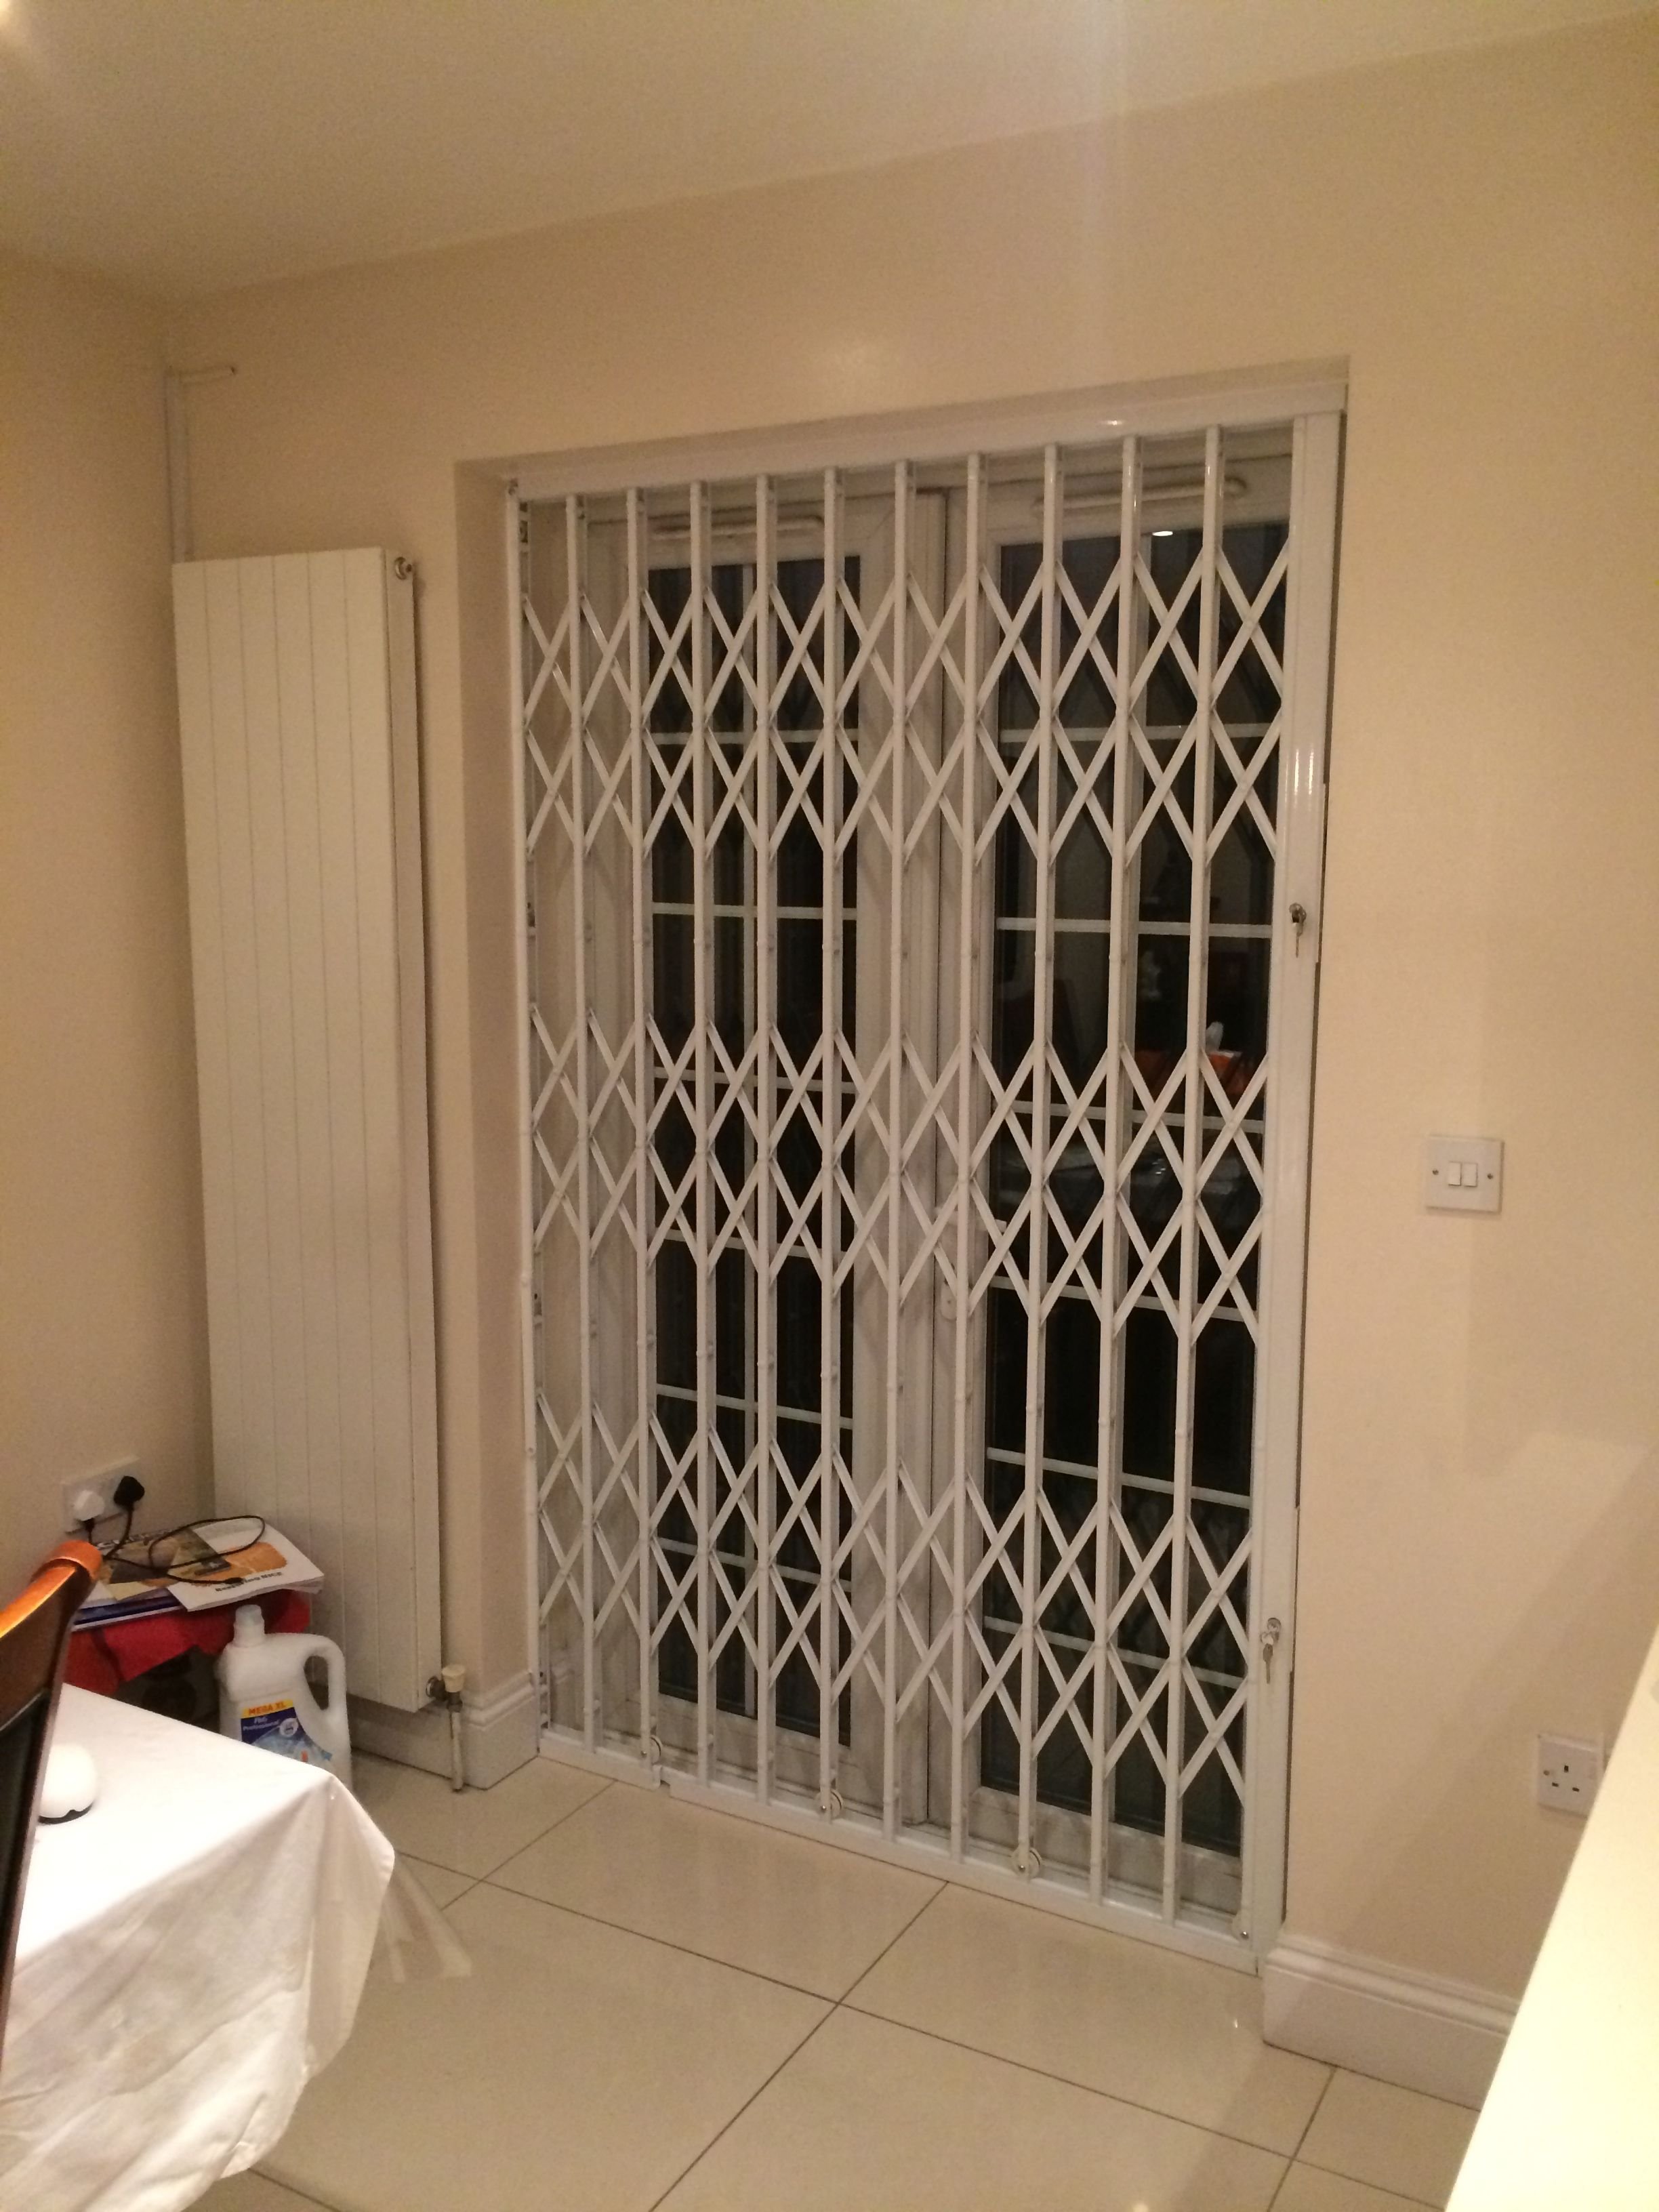 RSG1000 retractable patio door security grilles fitted to a